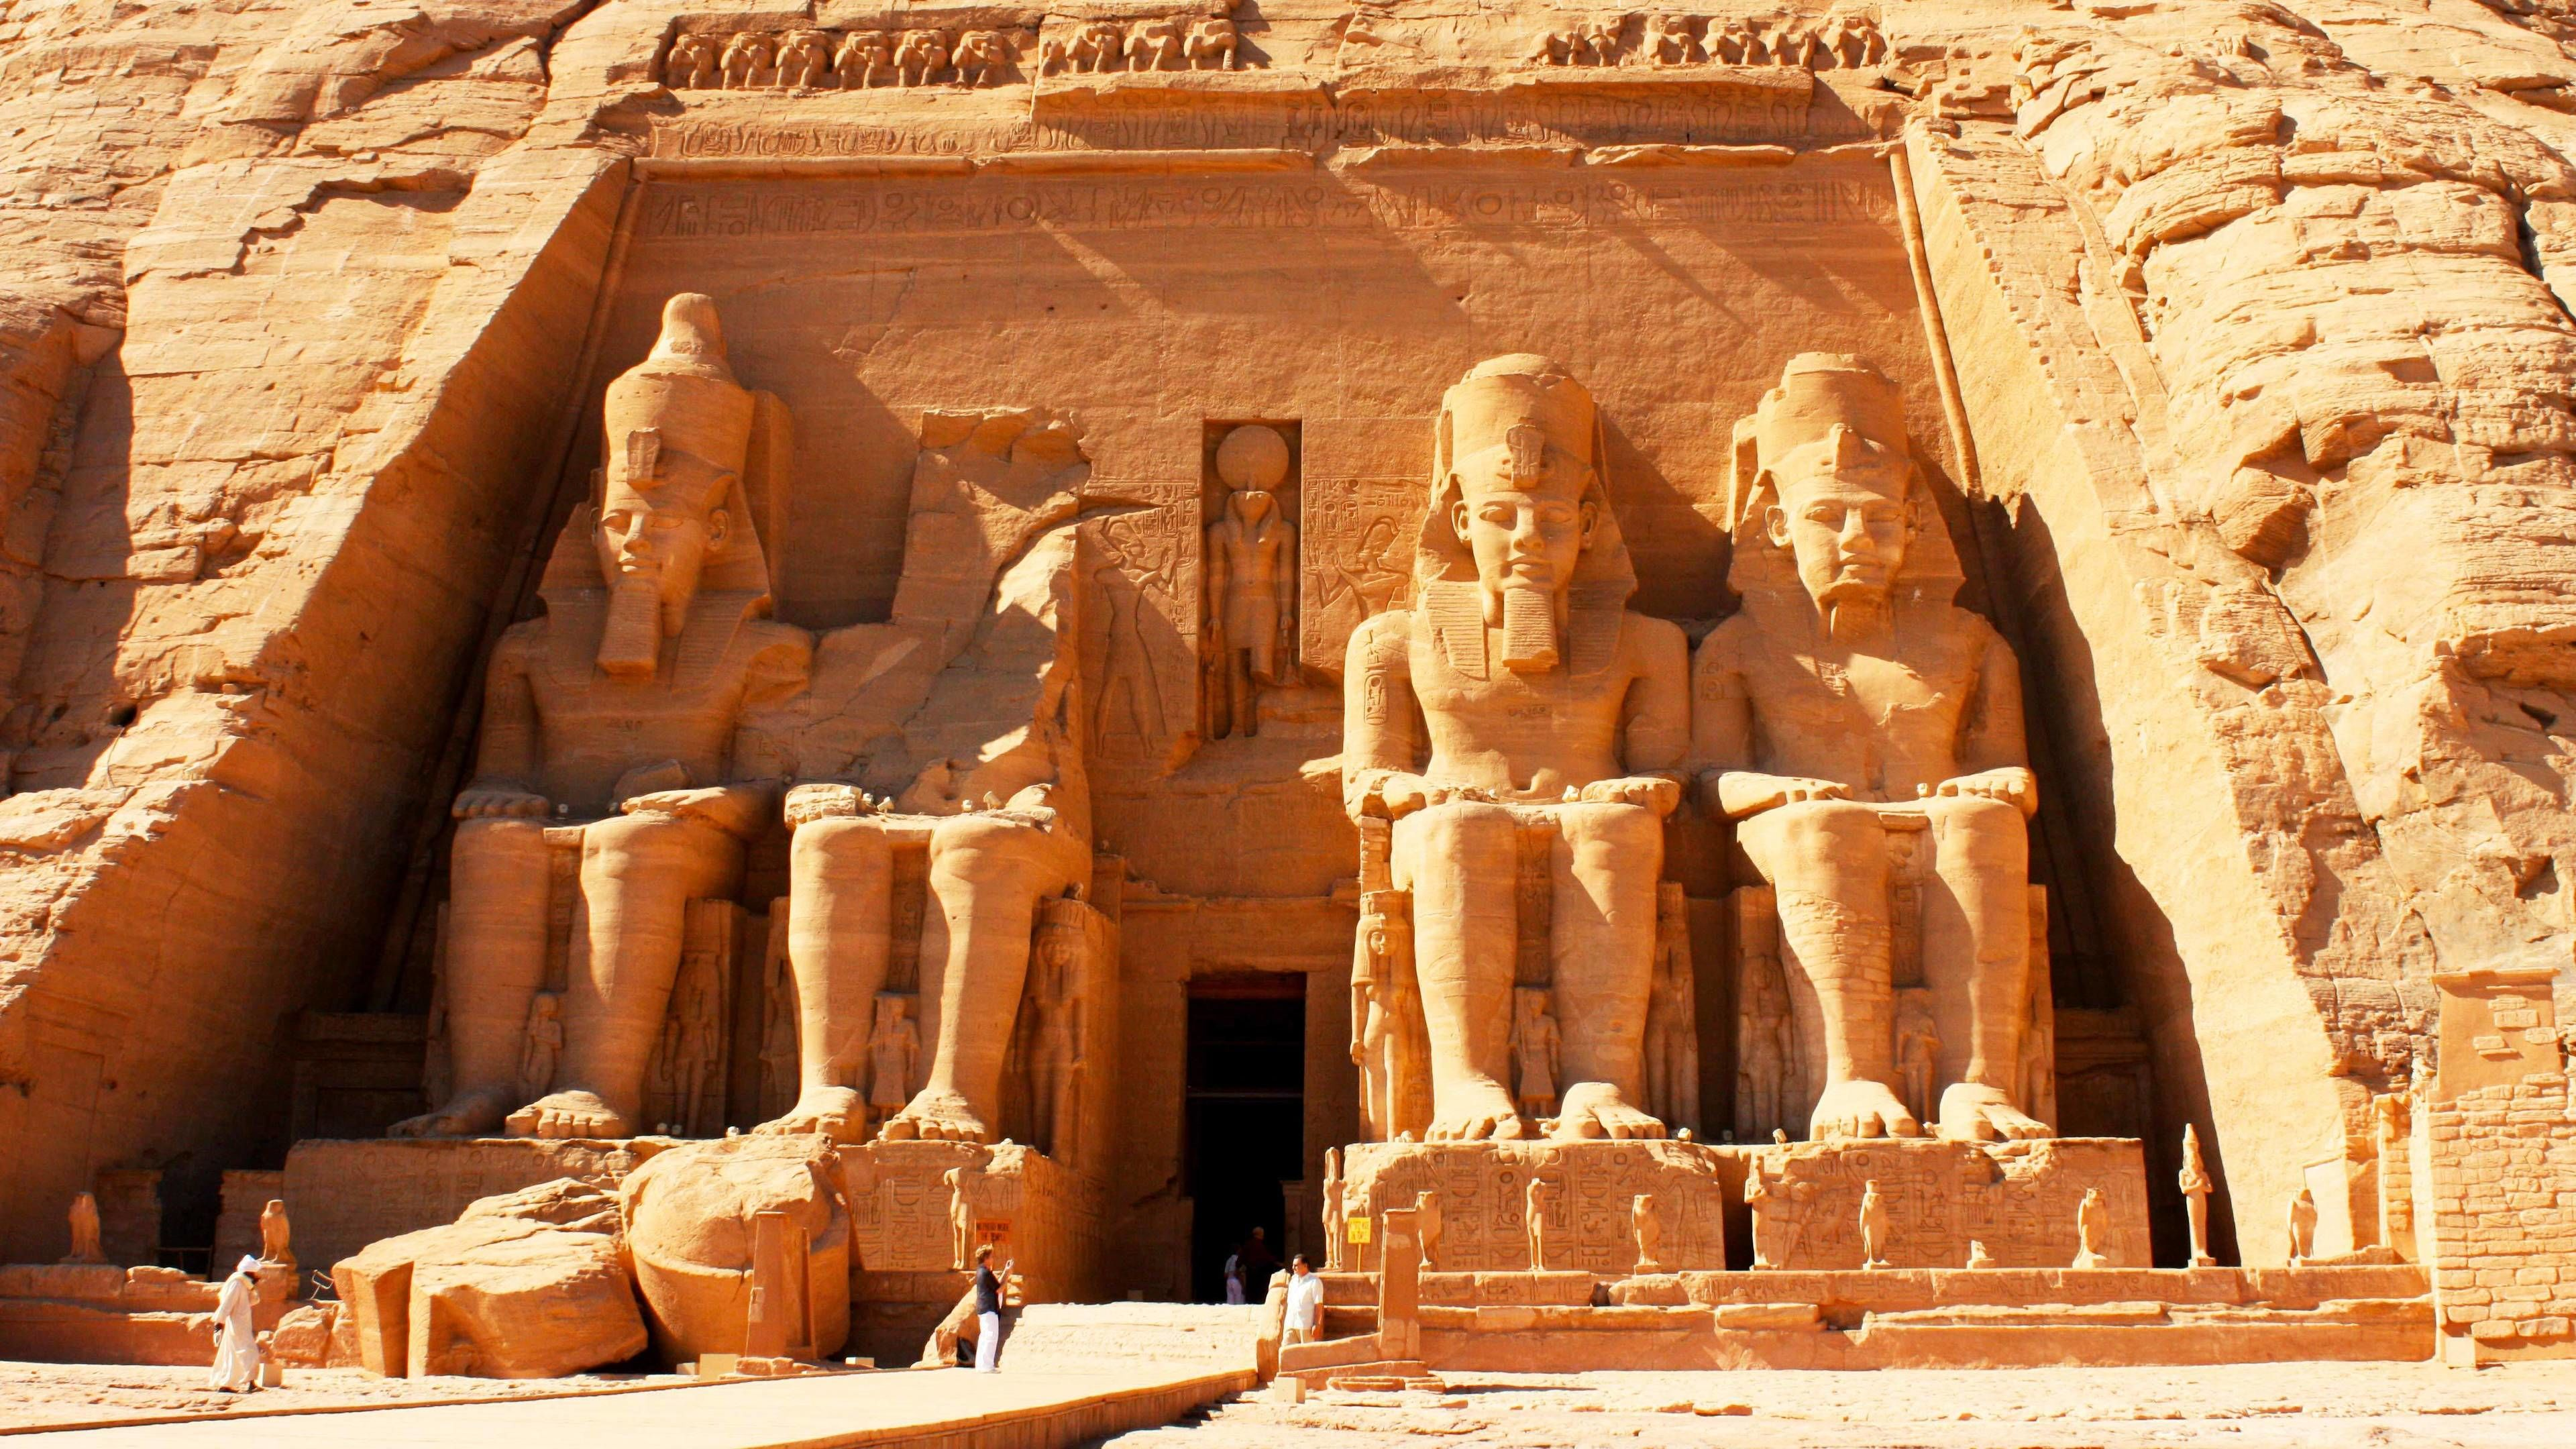 Four large sculptures guard the entrance to the Great Temple at Abu Simbel